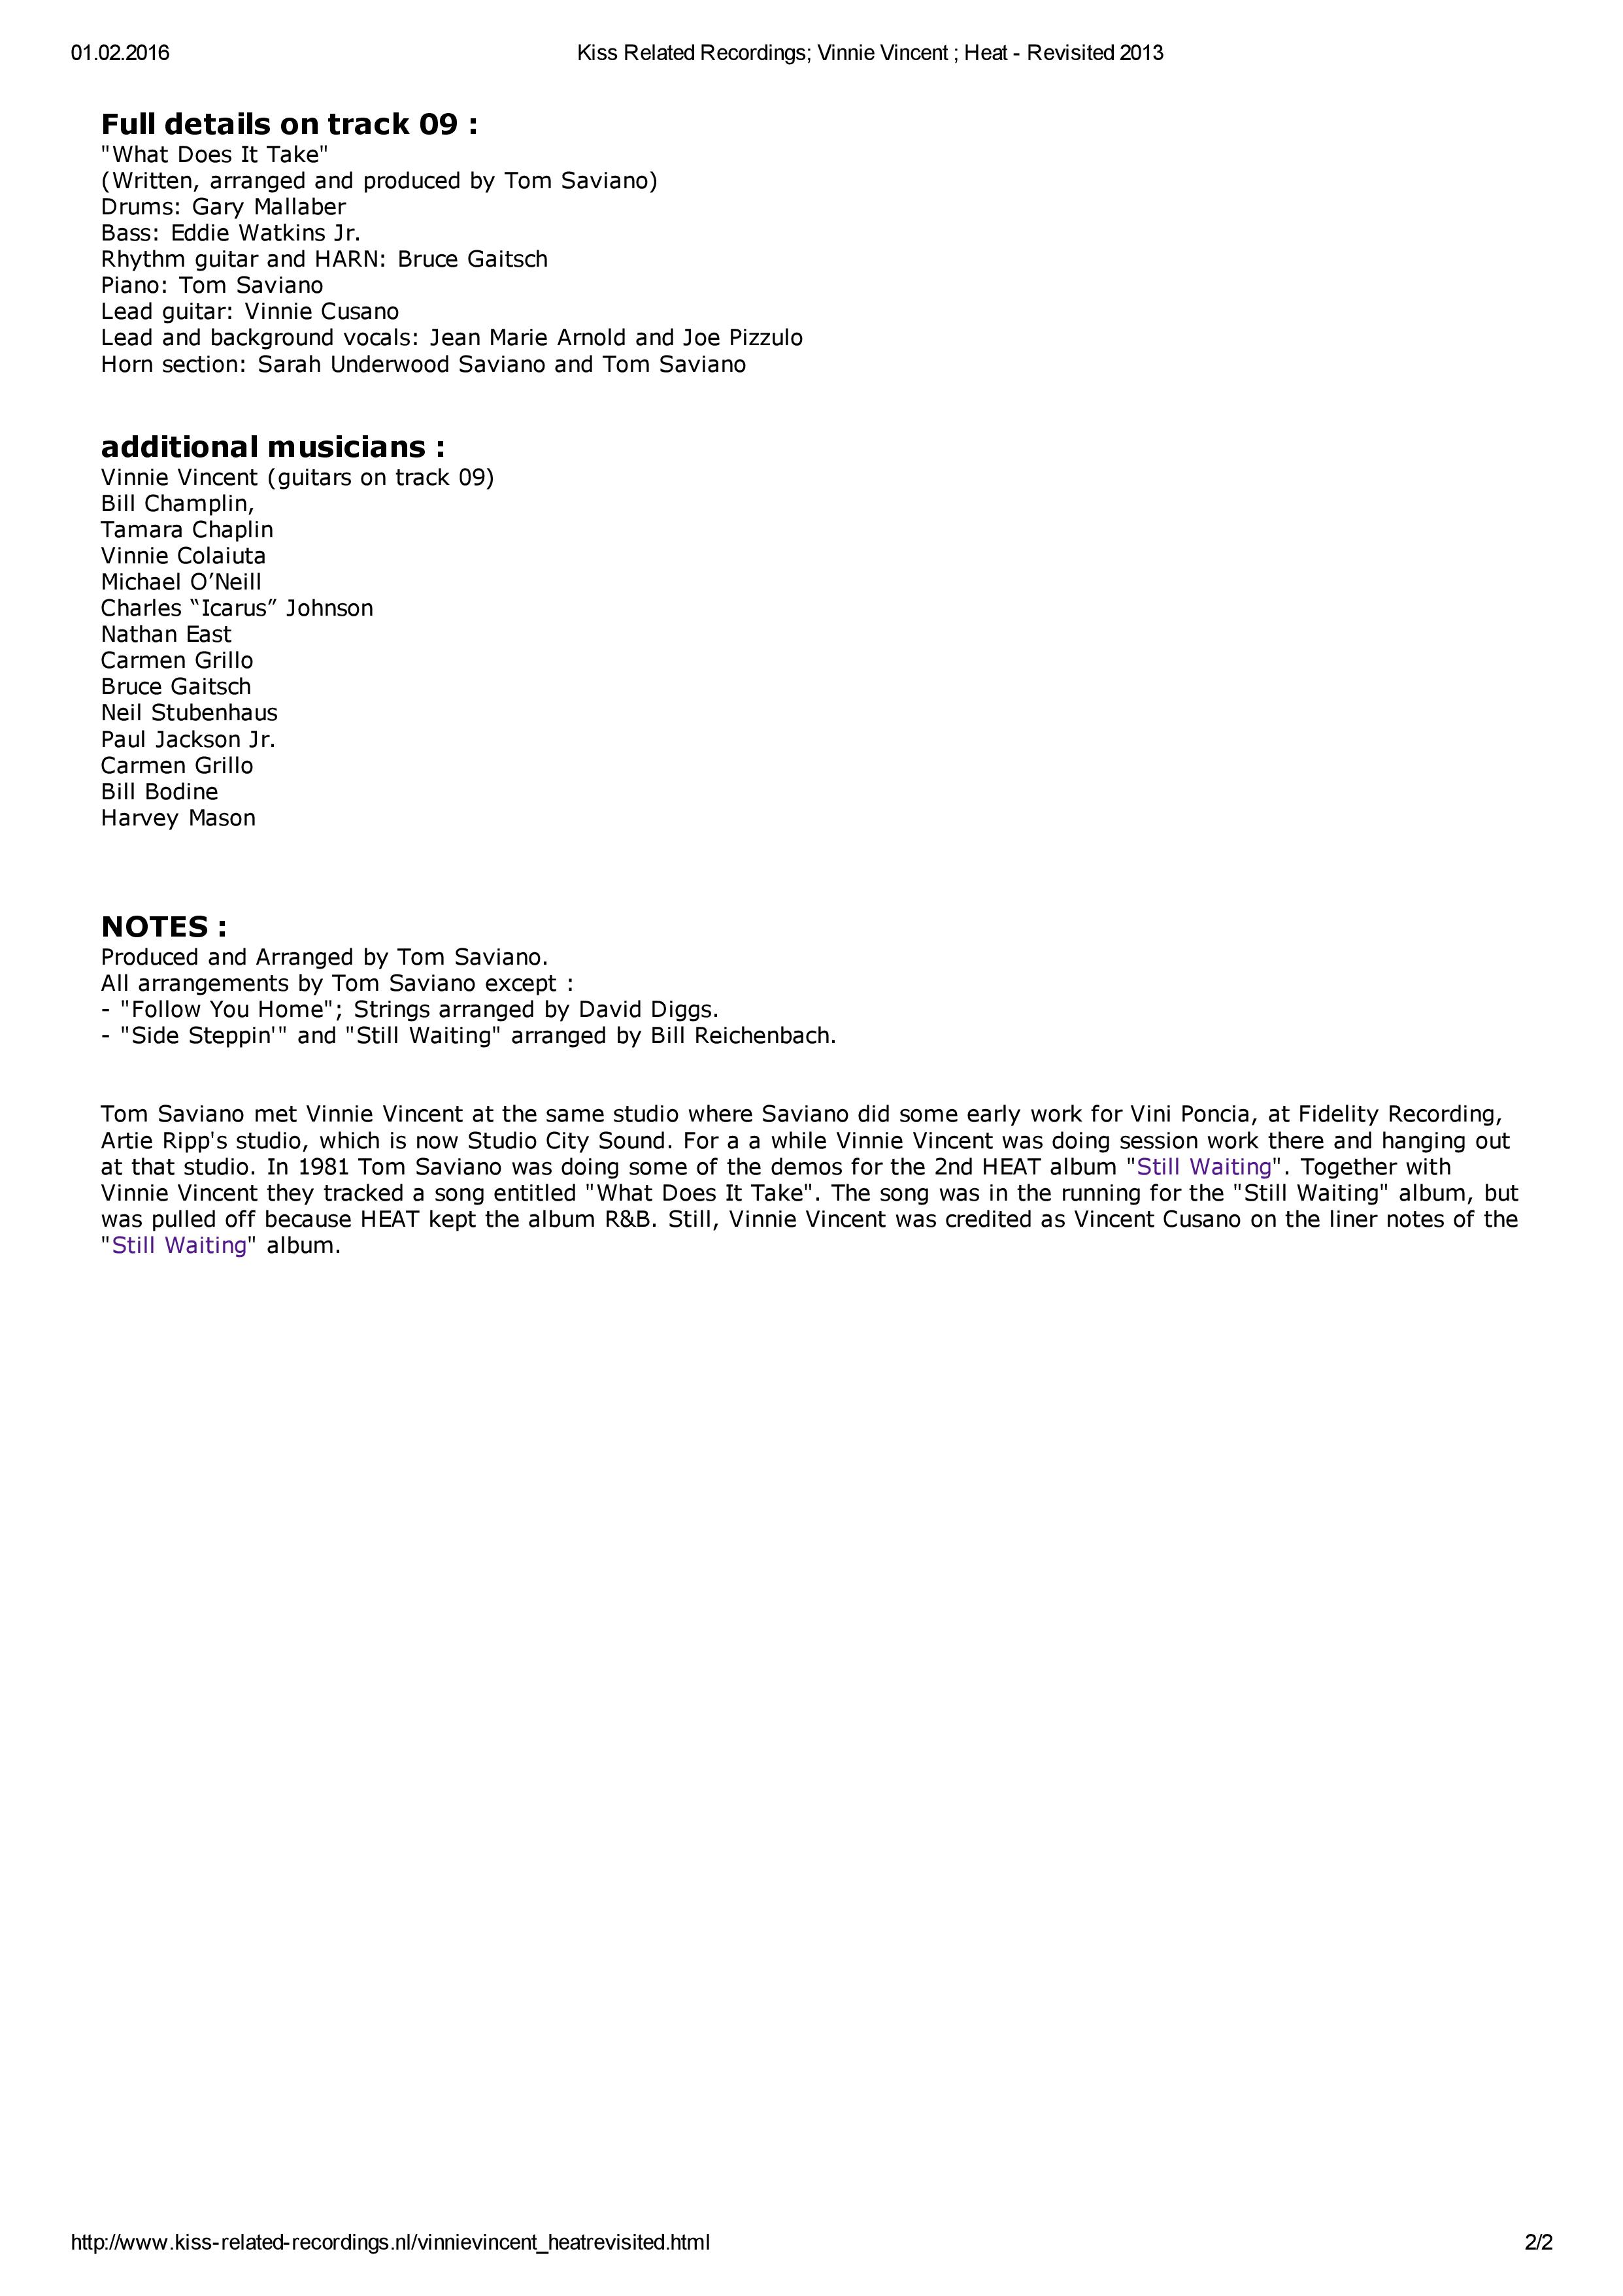 Kiss Related Recordings; Vinnie Vincent ; Heat - Revisited 2013-page-002.jpg